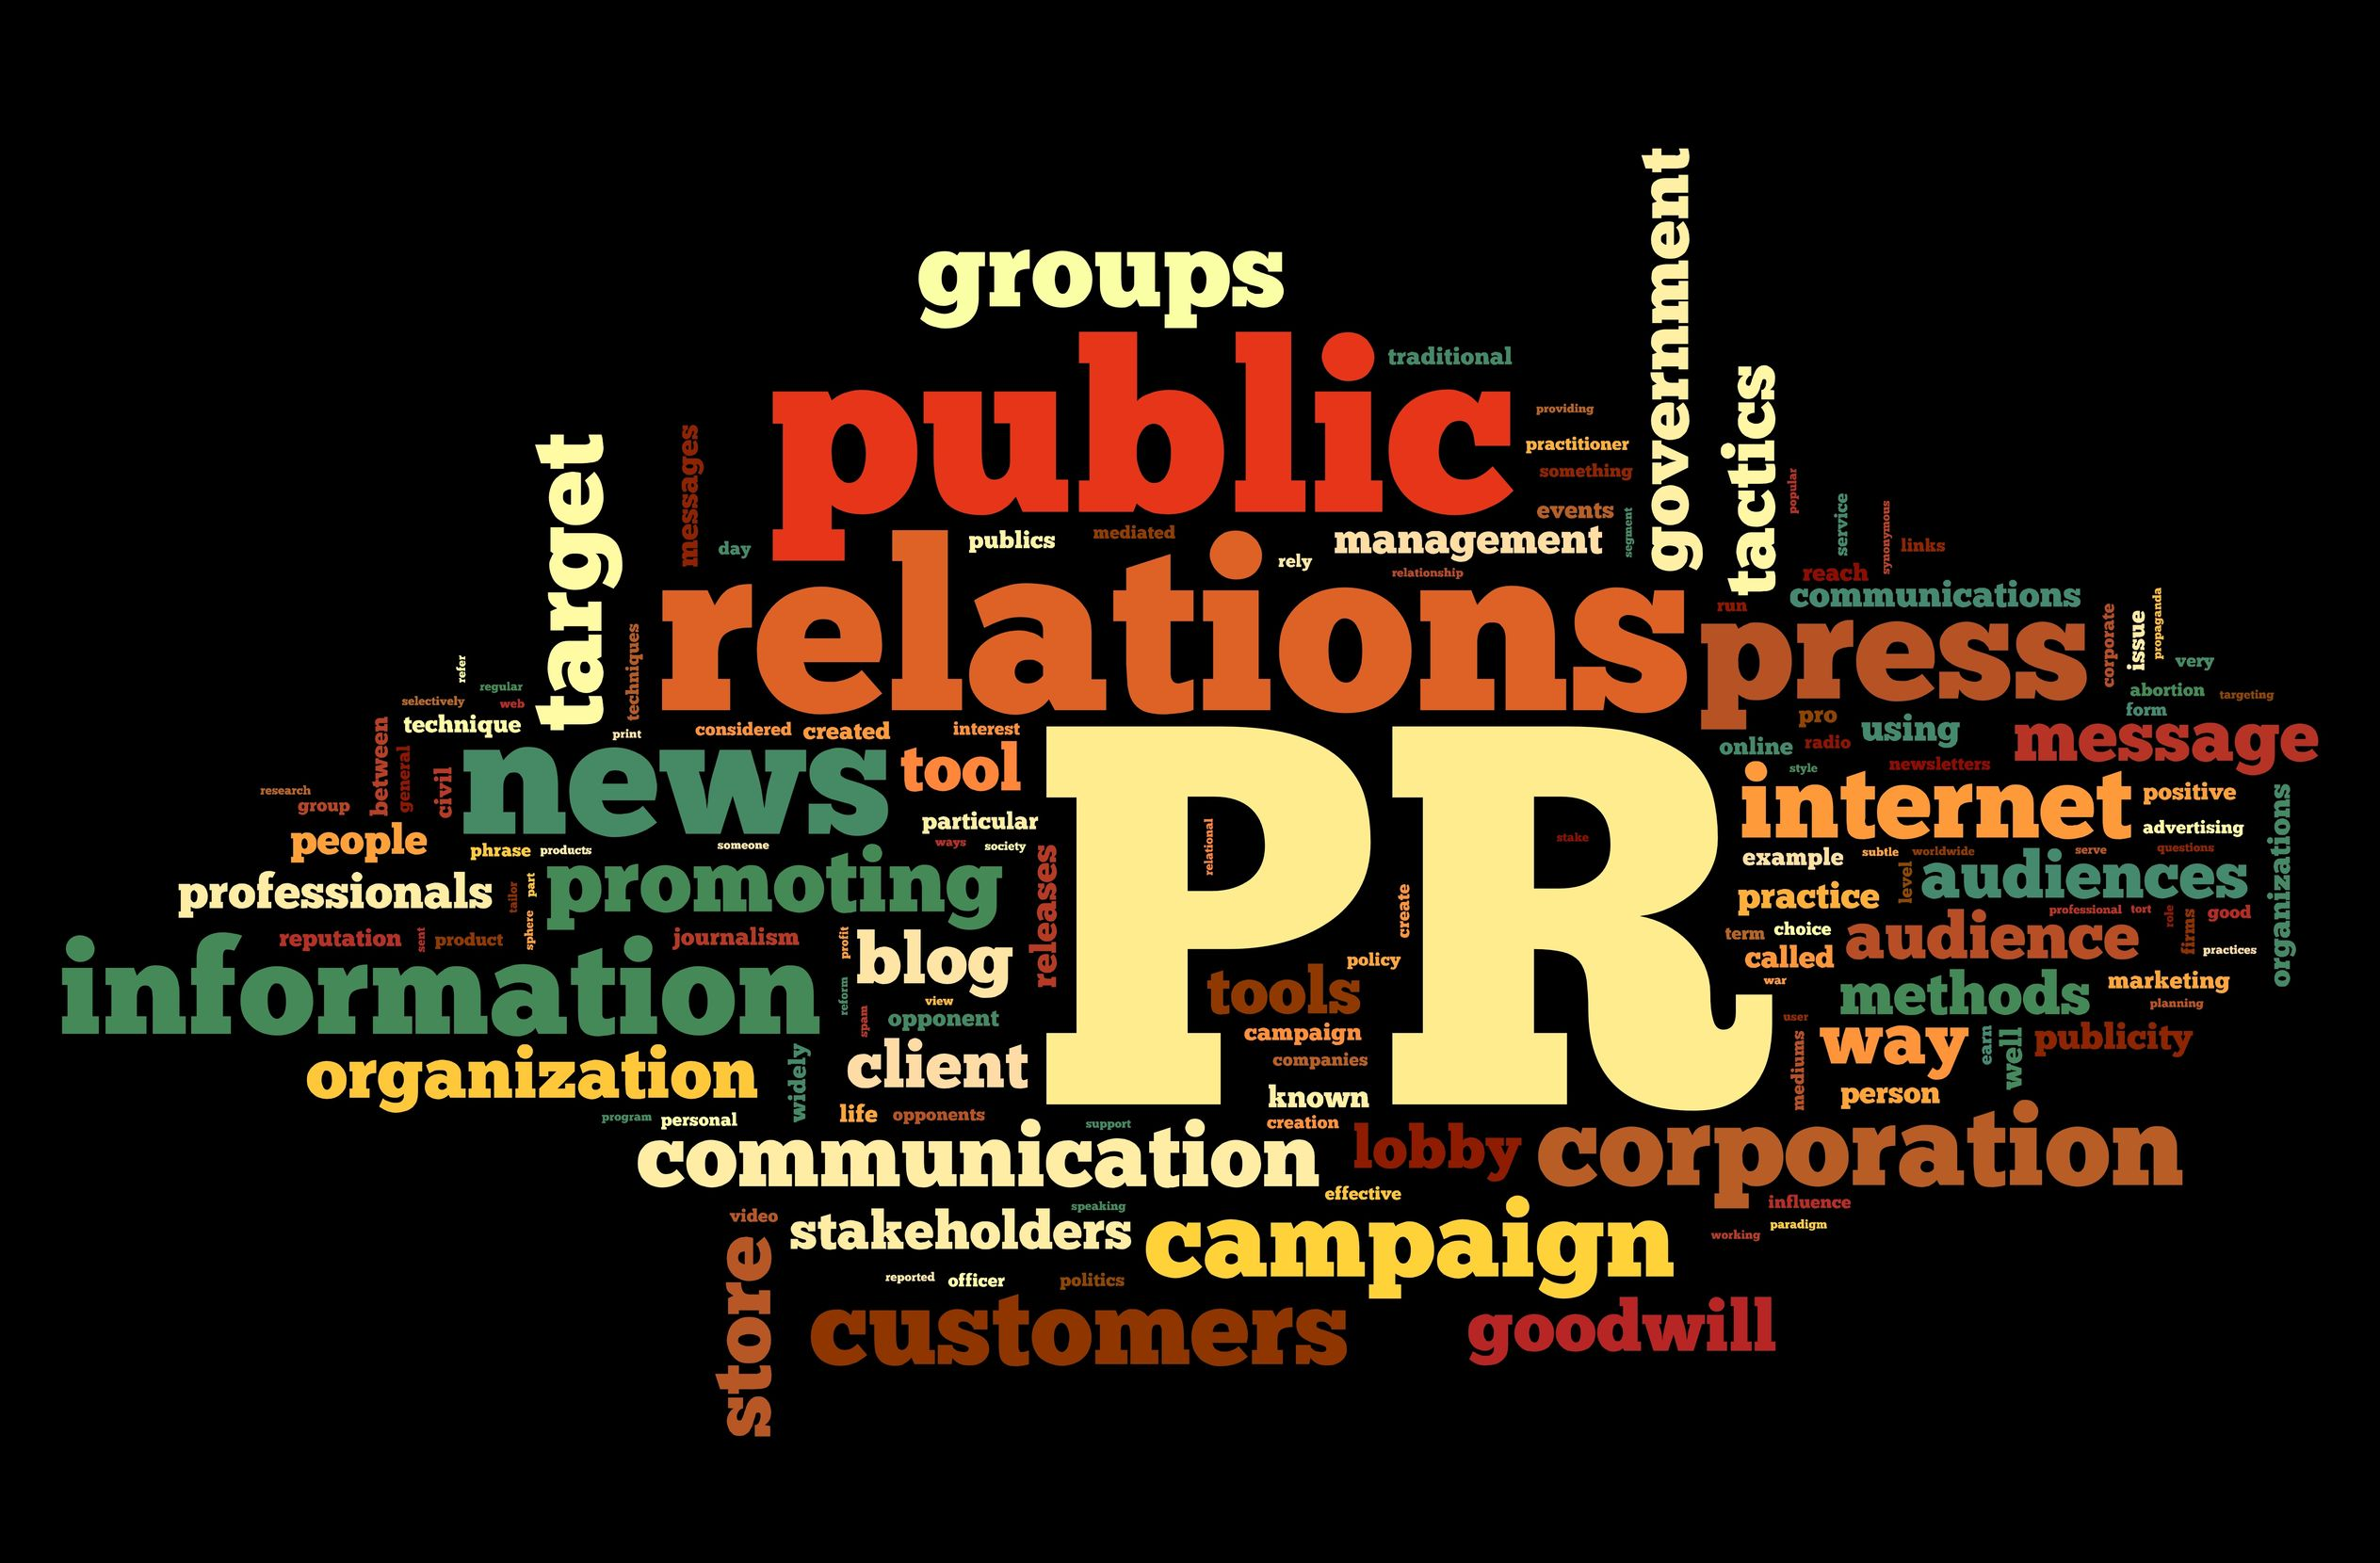 media public relations and pr practitioners The power of public relations in media relations: a national survey of health pr practitioners by sooyoung cho based on the typology of power suggested by french and raven, this.